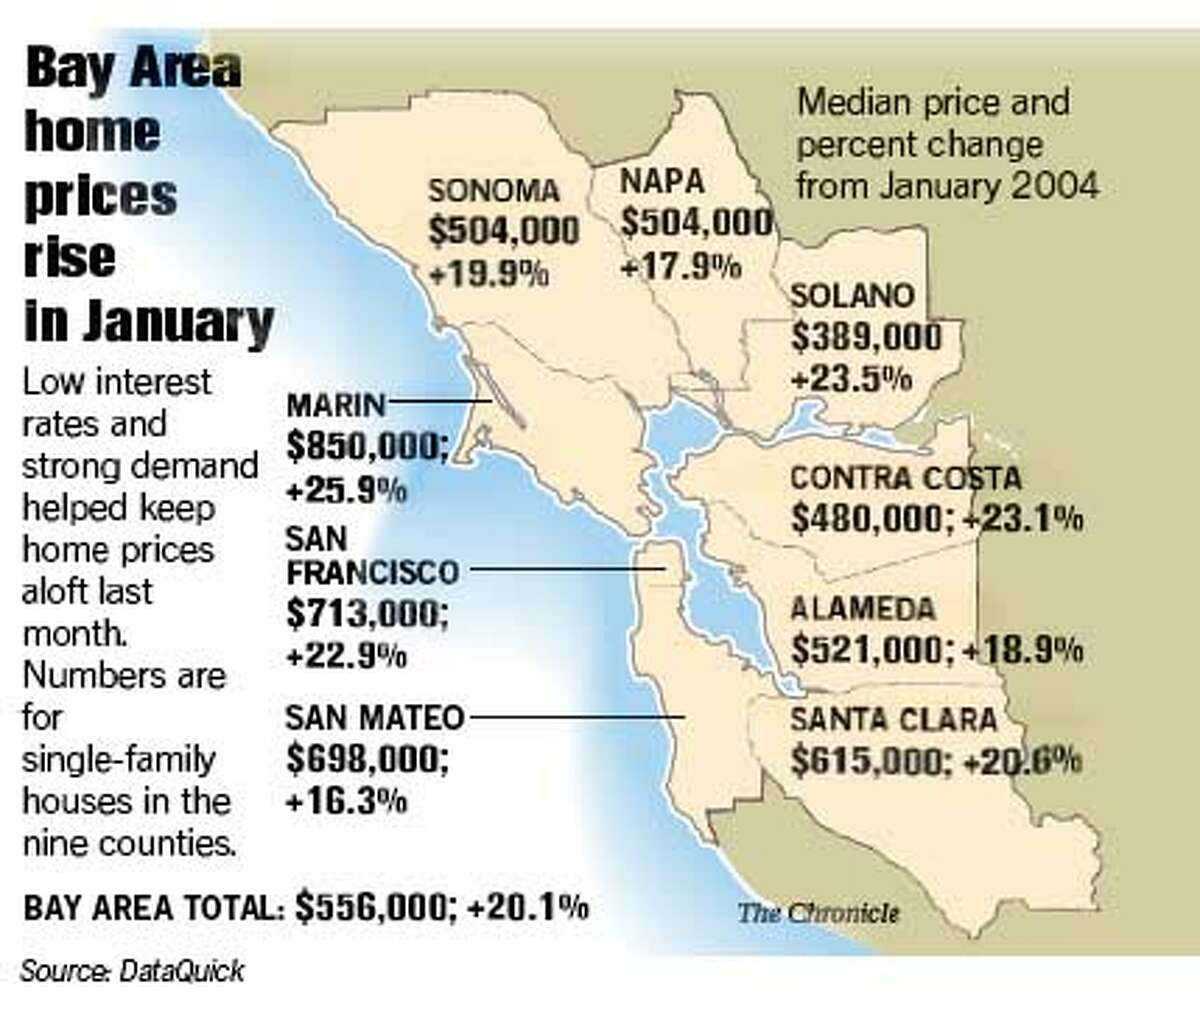 Bay Area Home Prices Increase 20 Sales Skyrocket Low Interest Rates Overseas Buyers Lift Market Even Higher And redwood city surprises with the bay area's third most expensive renter region overall. bay area home prices increase 20